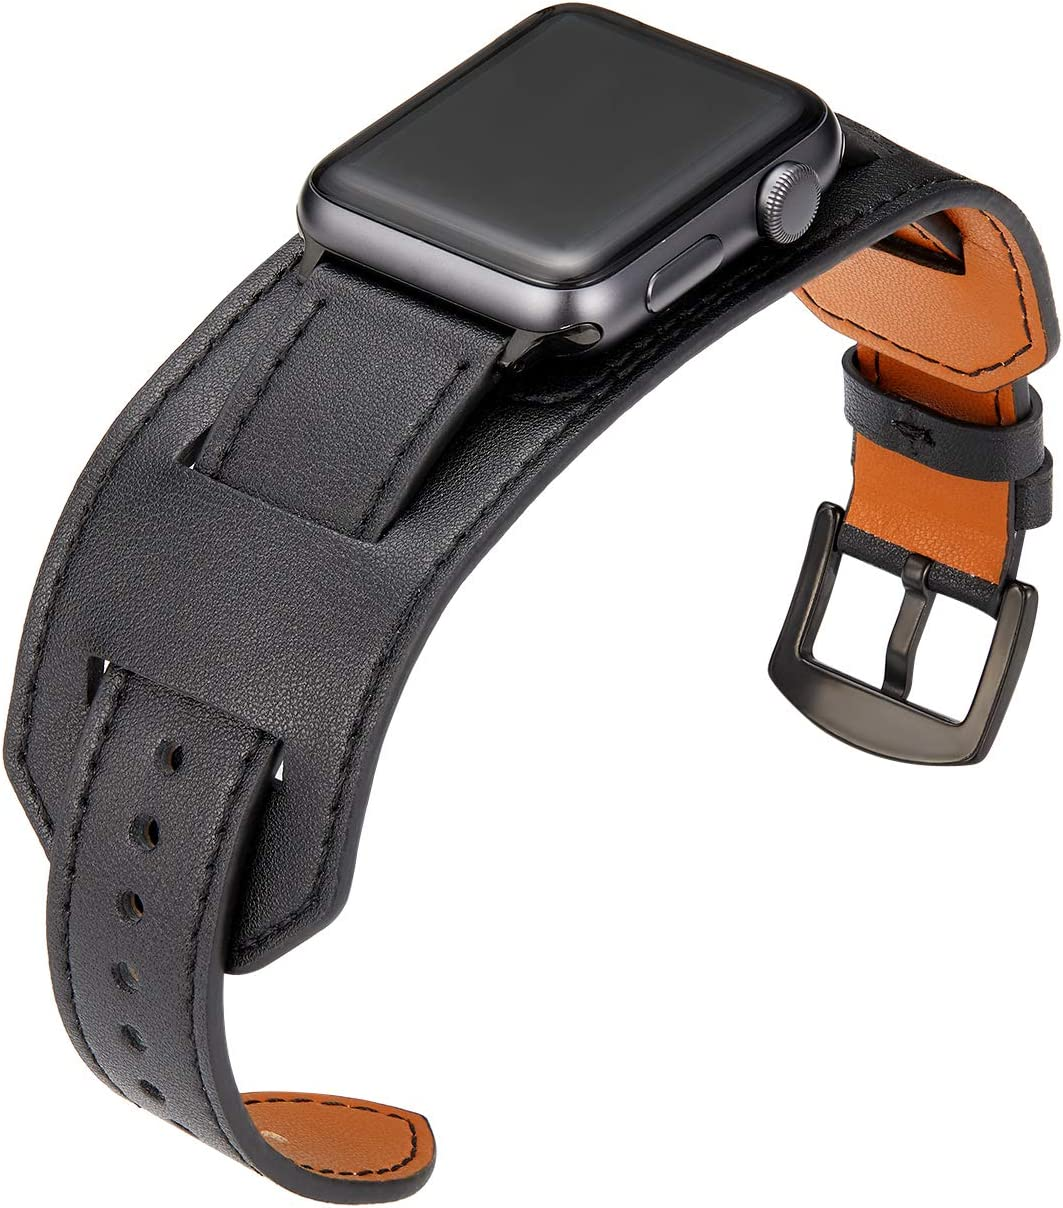 SEMILU Compatible with Apple Watch Band 42mm 44mm,Genuine Leather Replacement Strap Compatible with iwatch SE Series 6 5 4 3 2 1-42/44mm Black